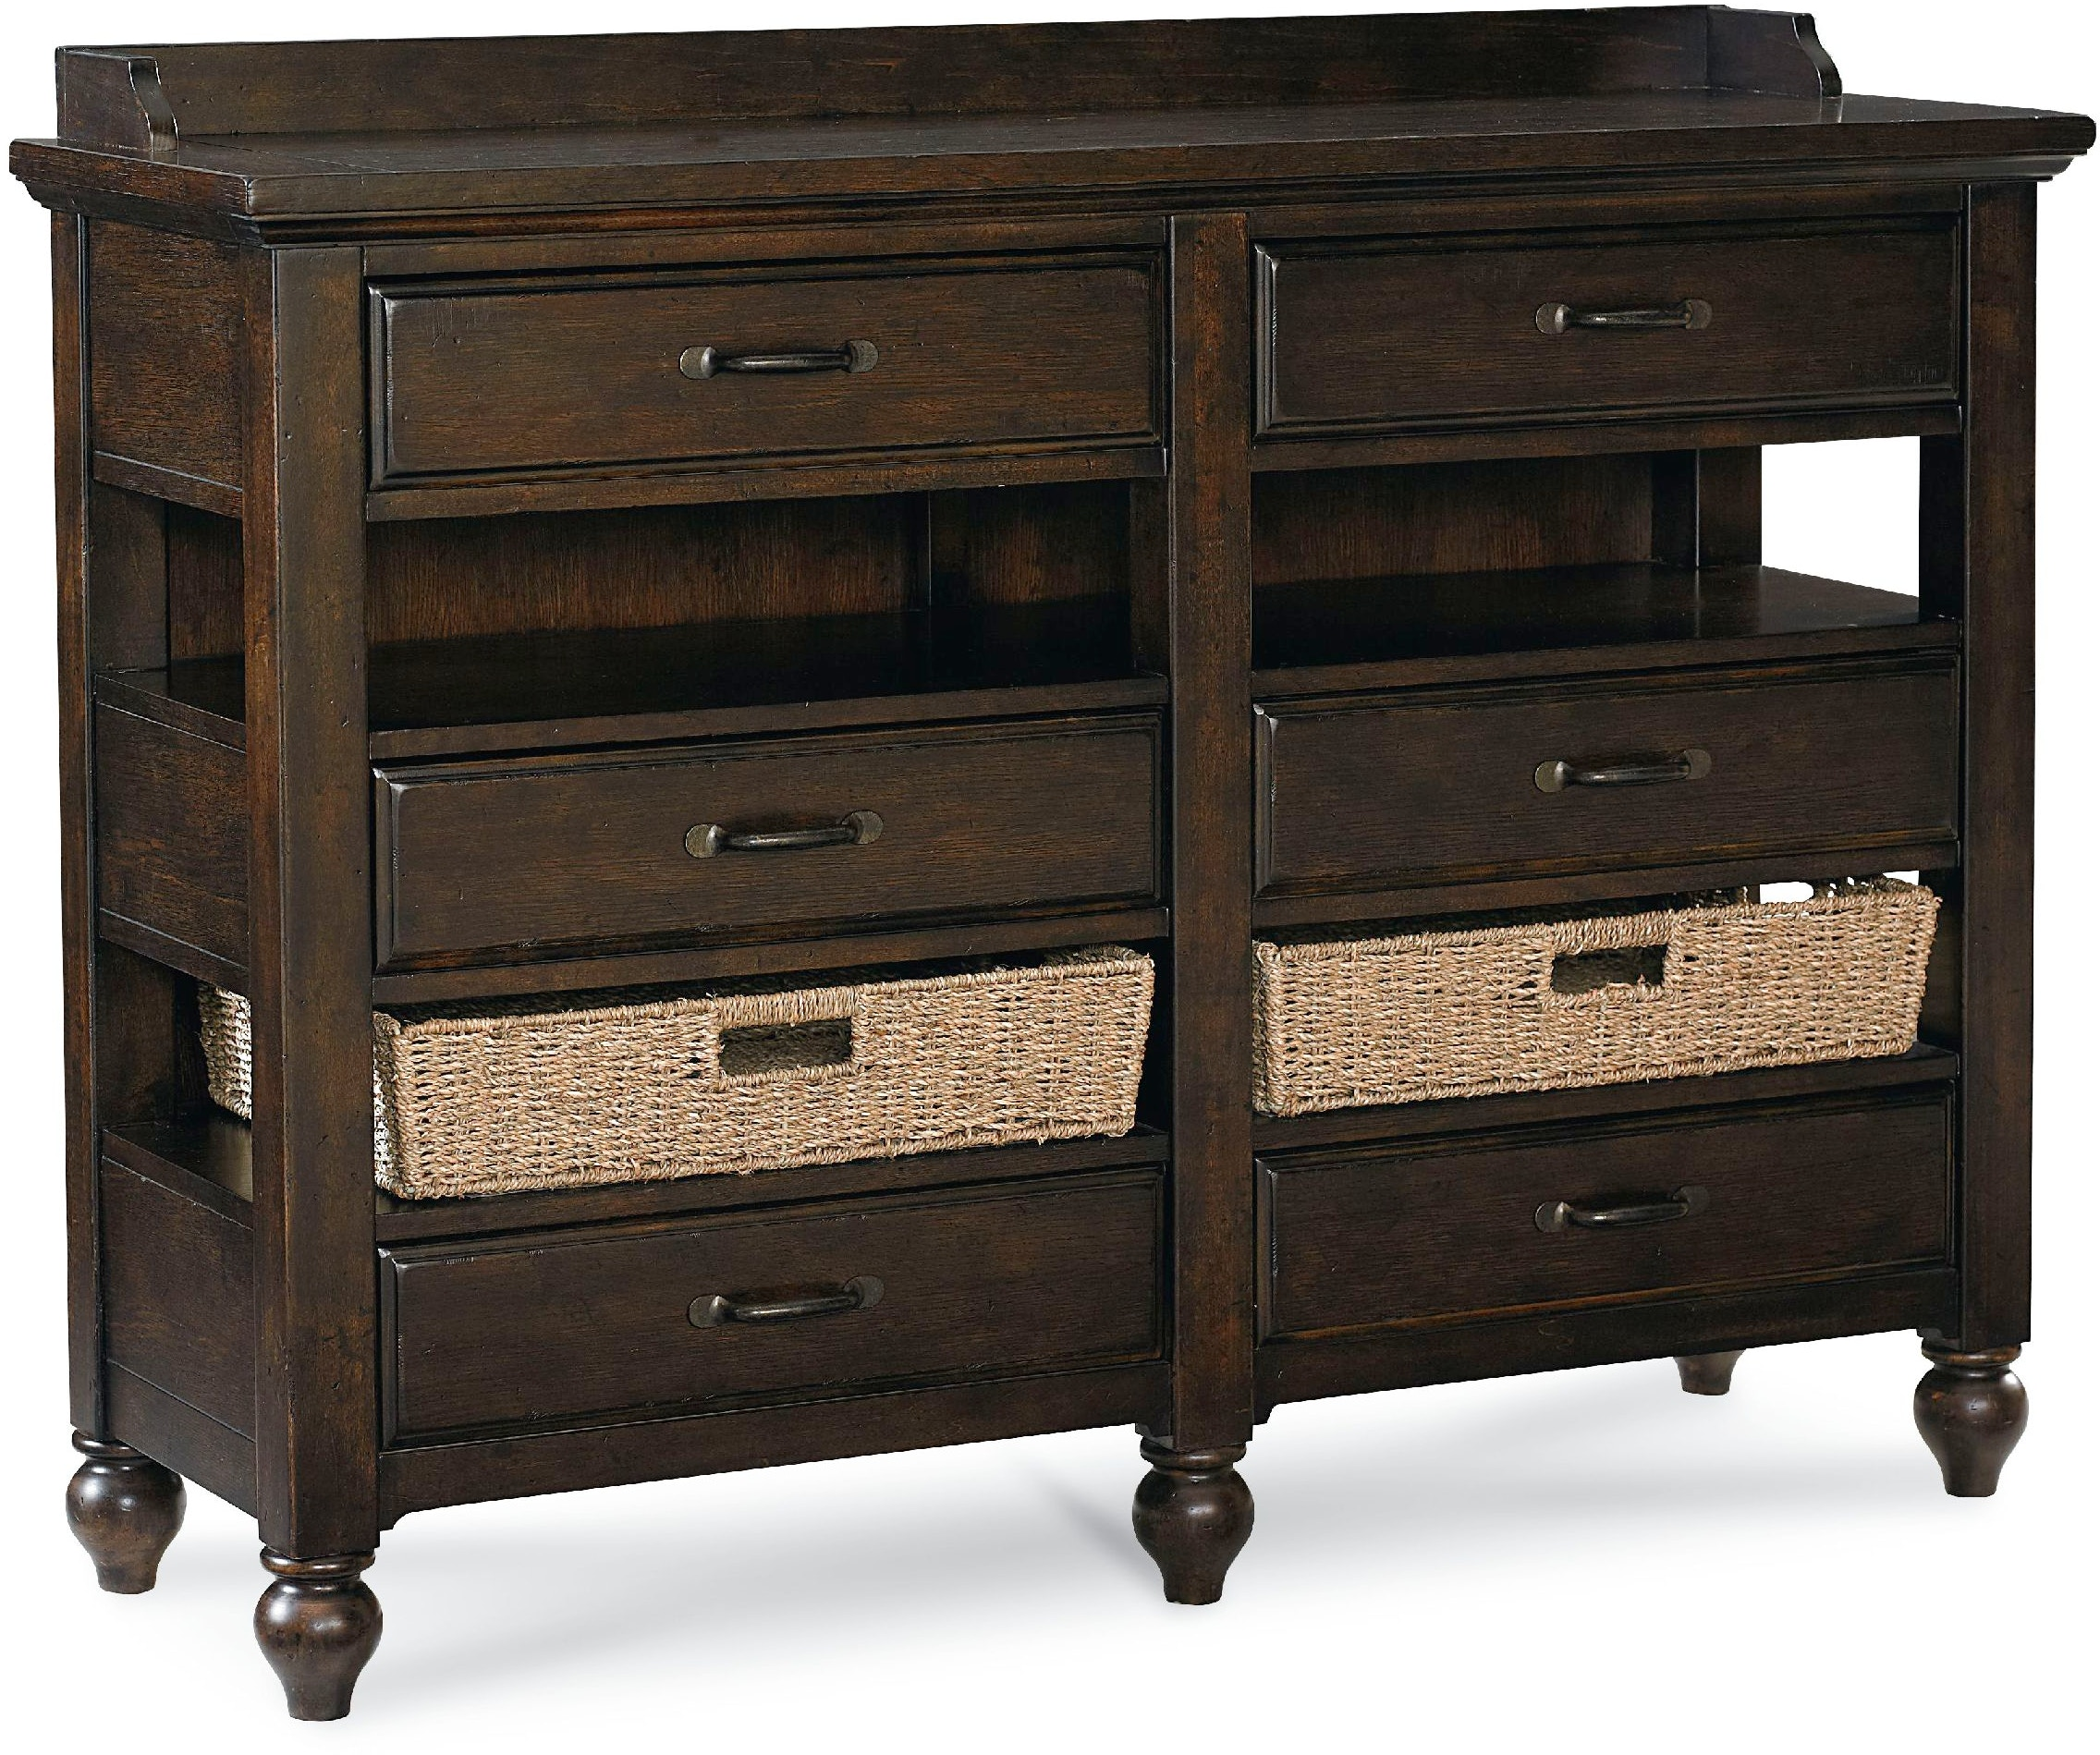 Legacy Classic Furniture Dining Room Sideboard 3700-180